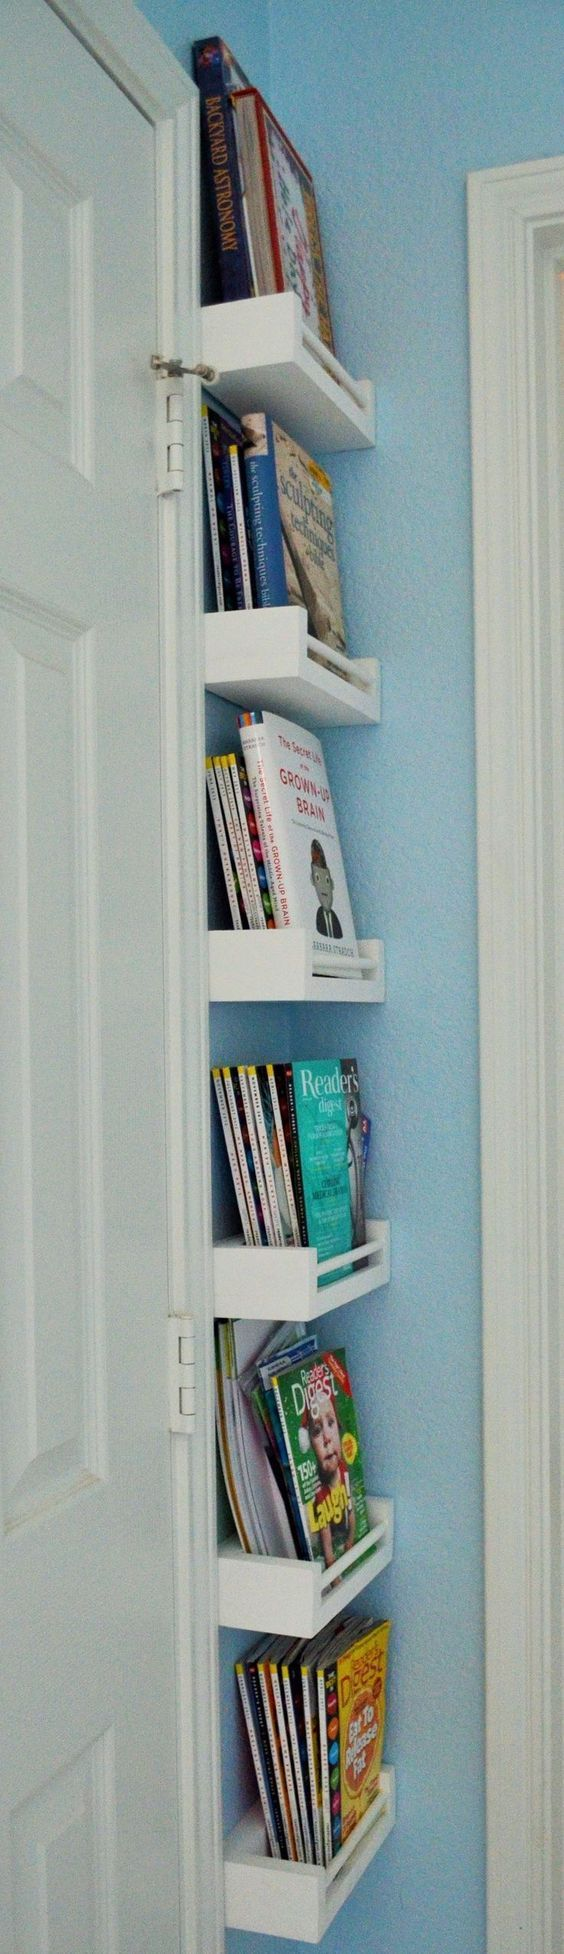 Storing Books In Small Spaces Part - 15: Pinterest